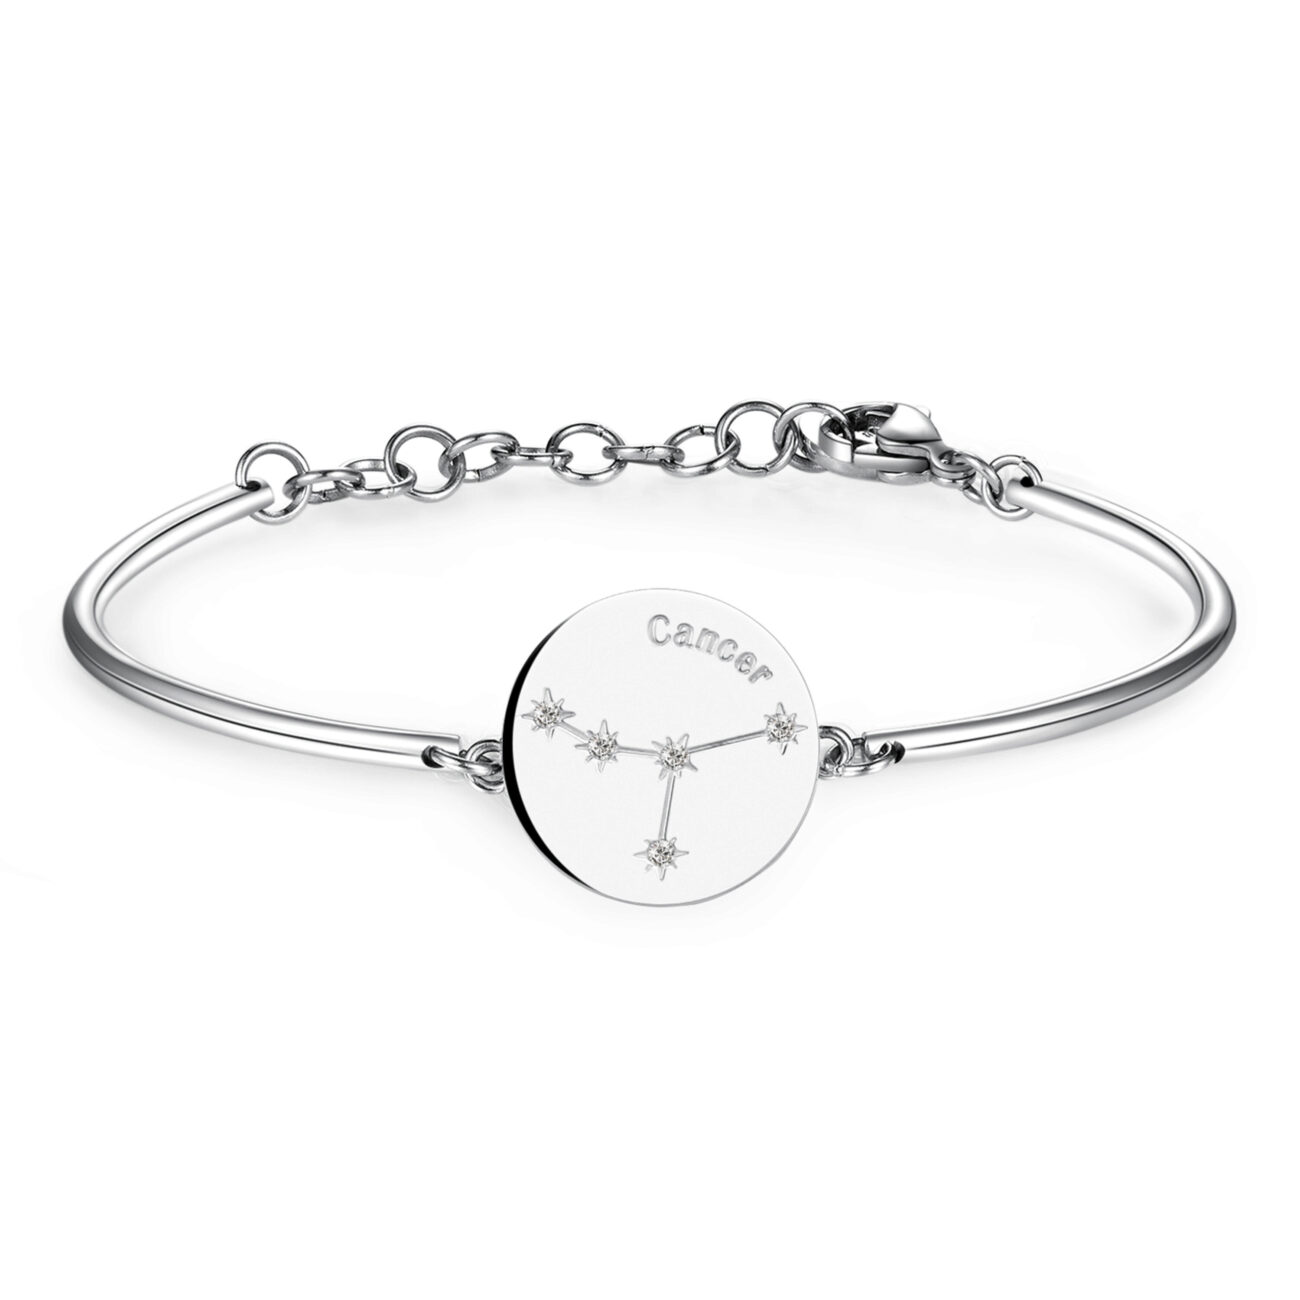 CANCER: EMOTIONAL, CREATIVE, KINDEmotional and creative, Cancers are looking for security and family. Loyal and kind, they keep their sources of happiness close at hand. Dreamy and romantic, feelings and emotional ties are at the heart of their world.316L Stainless steel bracelet with engraved zodiac sign disc and Swarovski® Elements crystals.